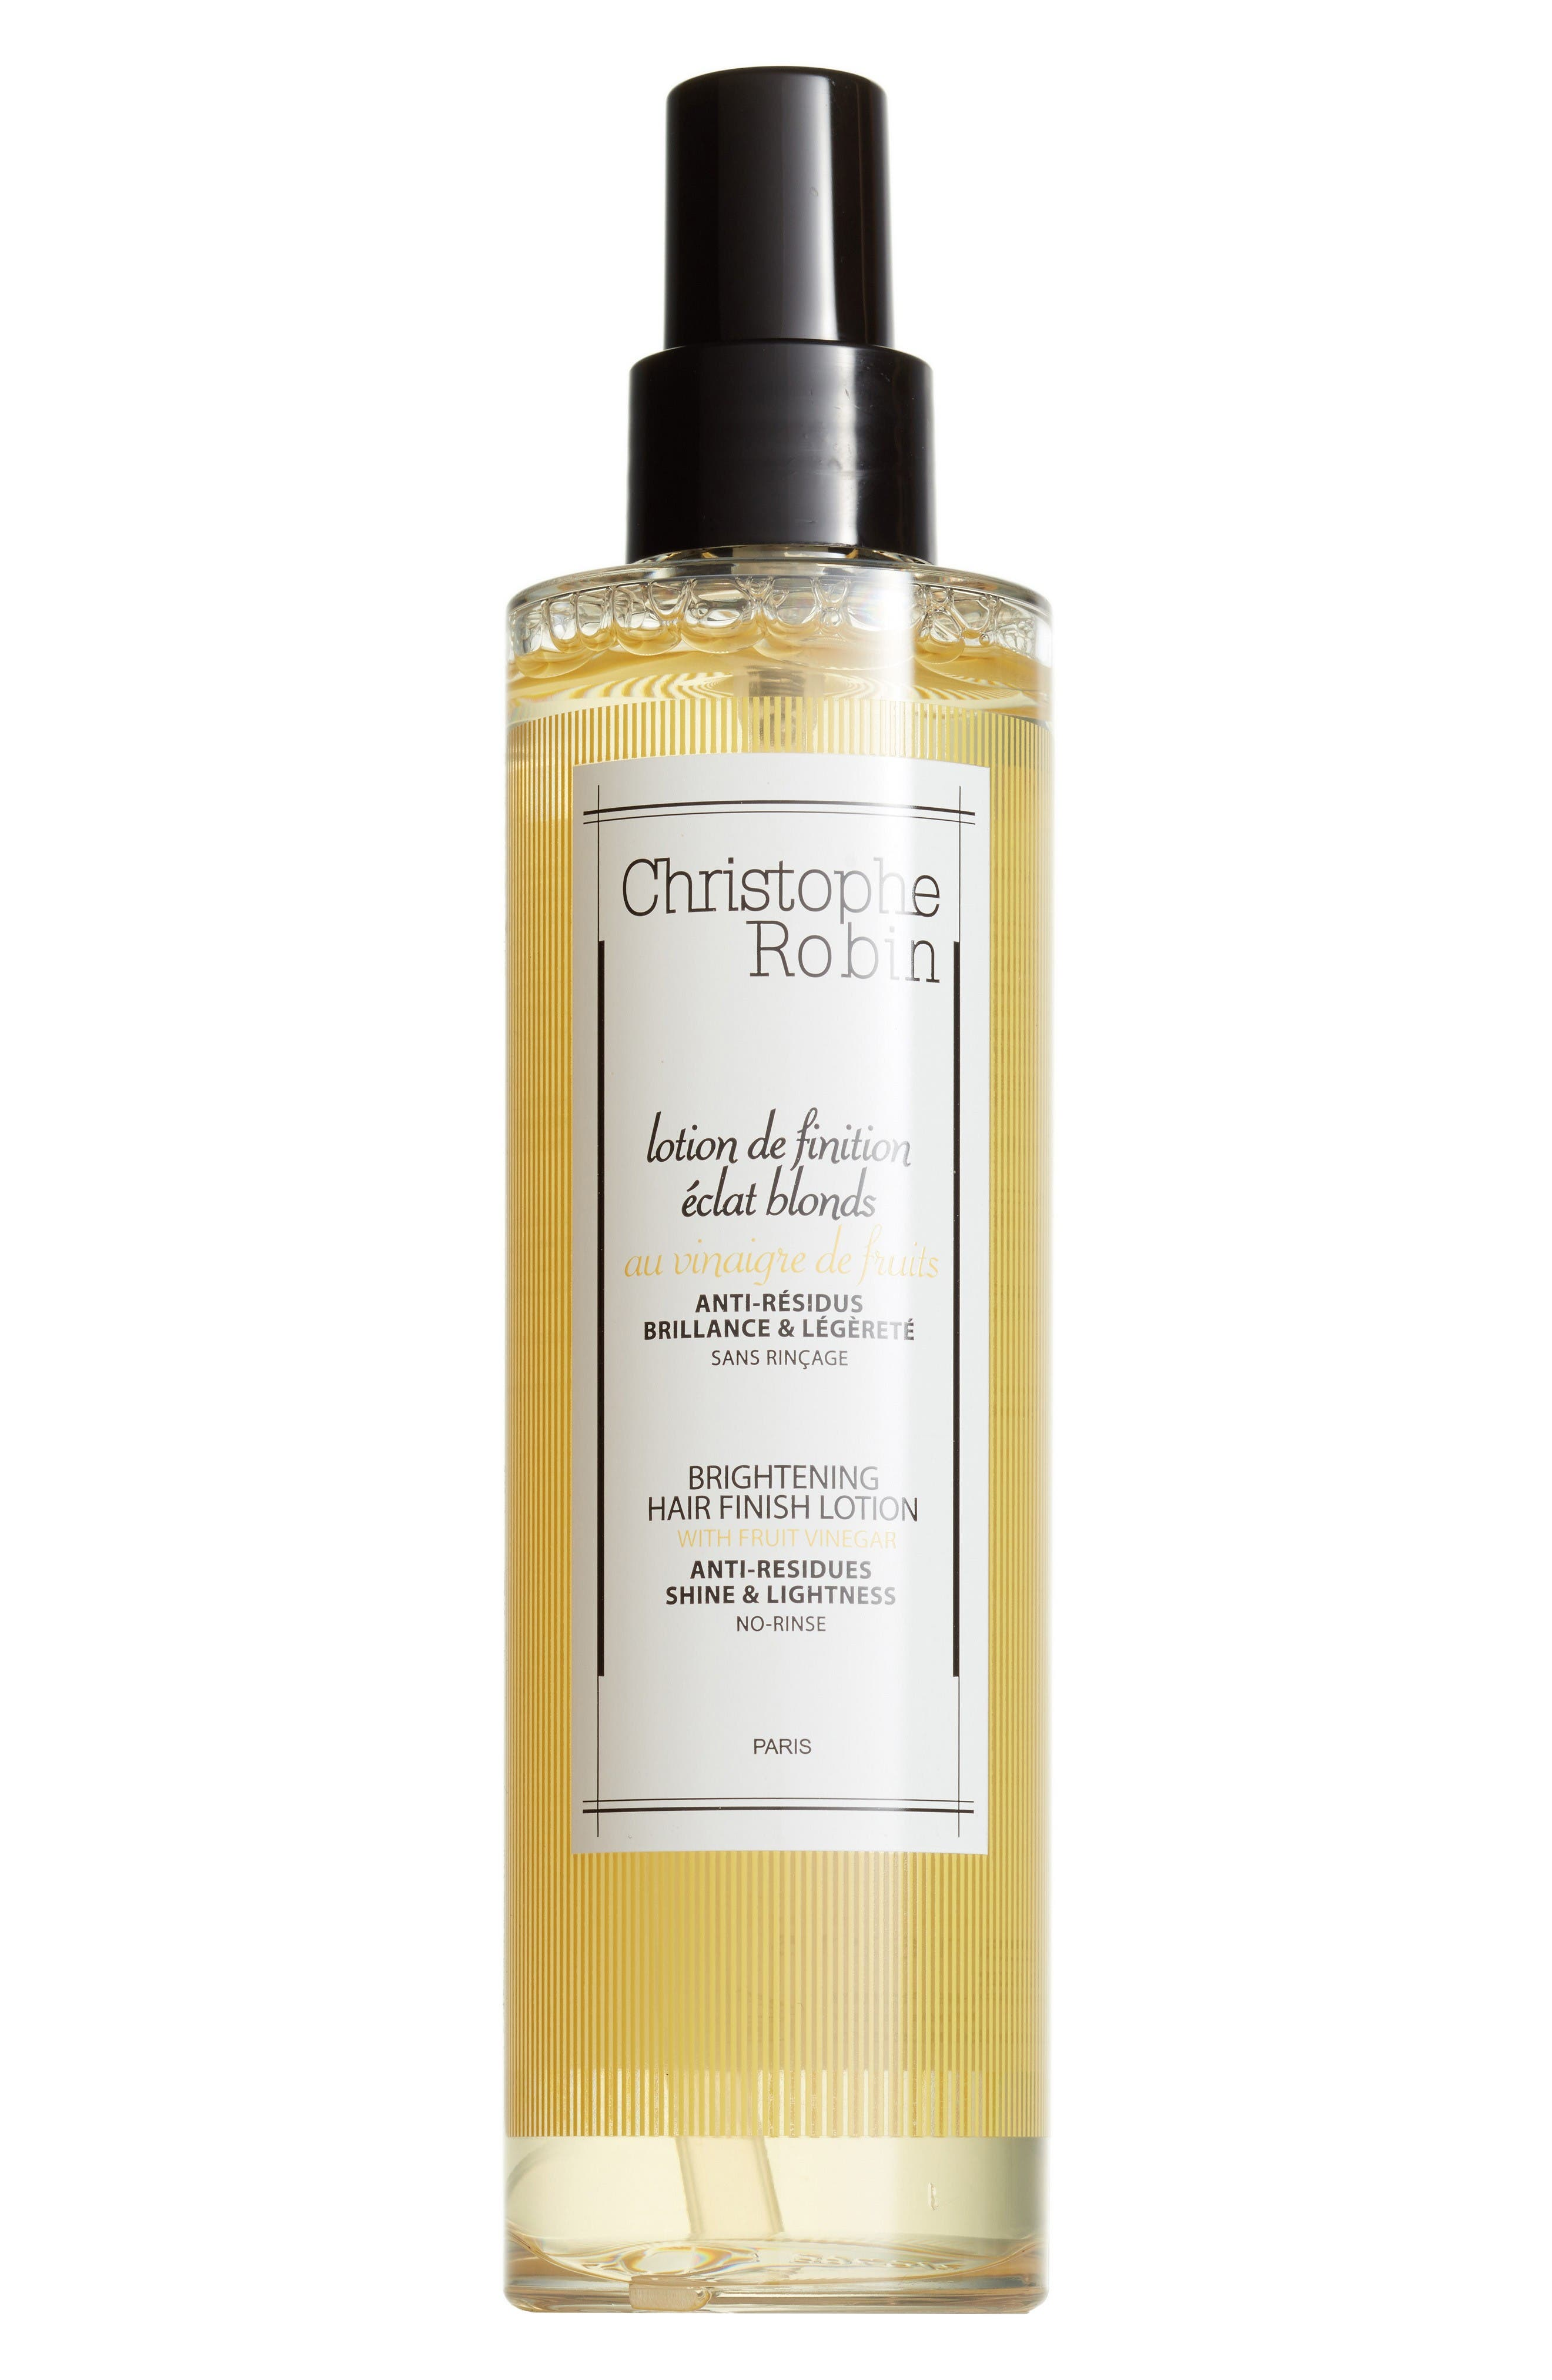 Alternate Image 1 Selected - SPACE.NK.apothecary Christophe Robin Brightening Hair Finish Lotion with Fruit Vinegar